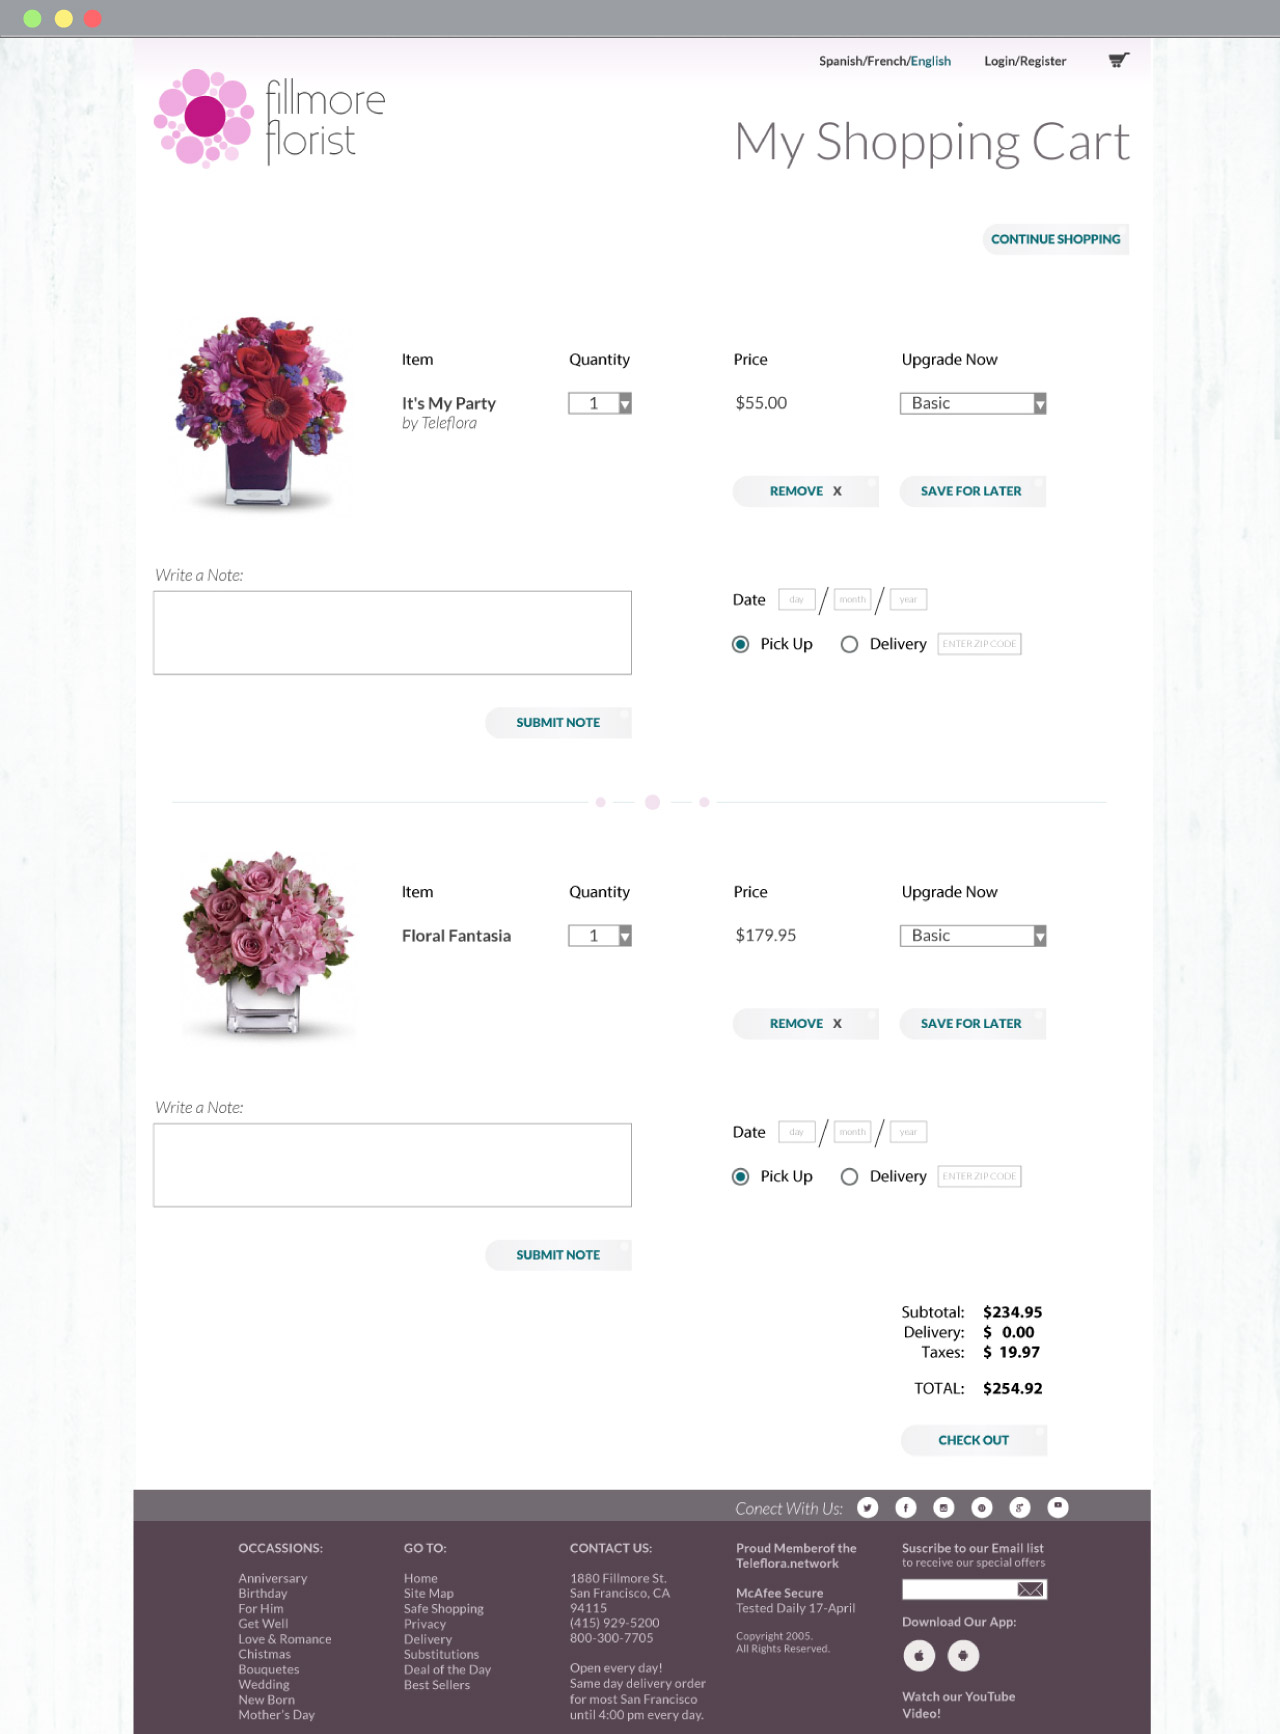 Fillmore Florist checkout page